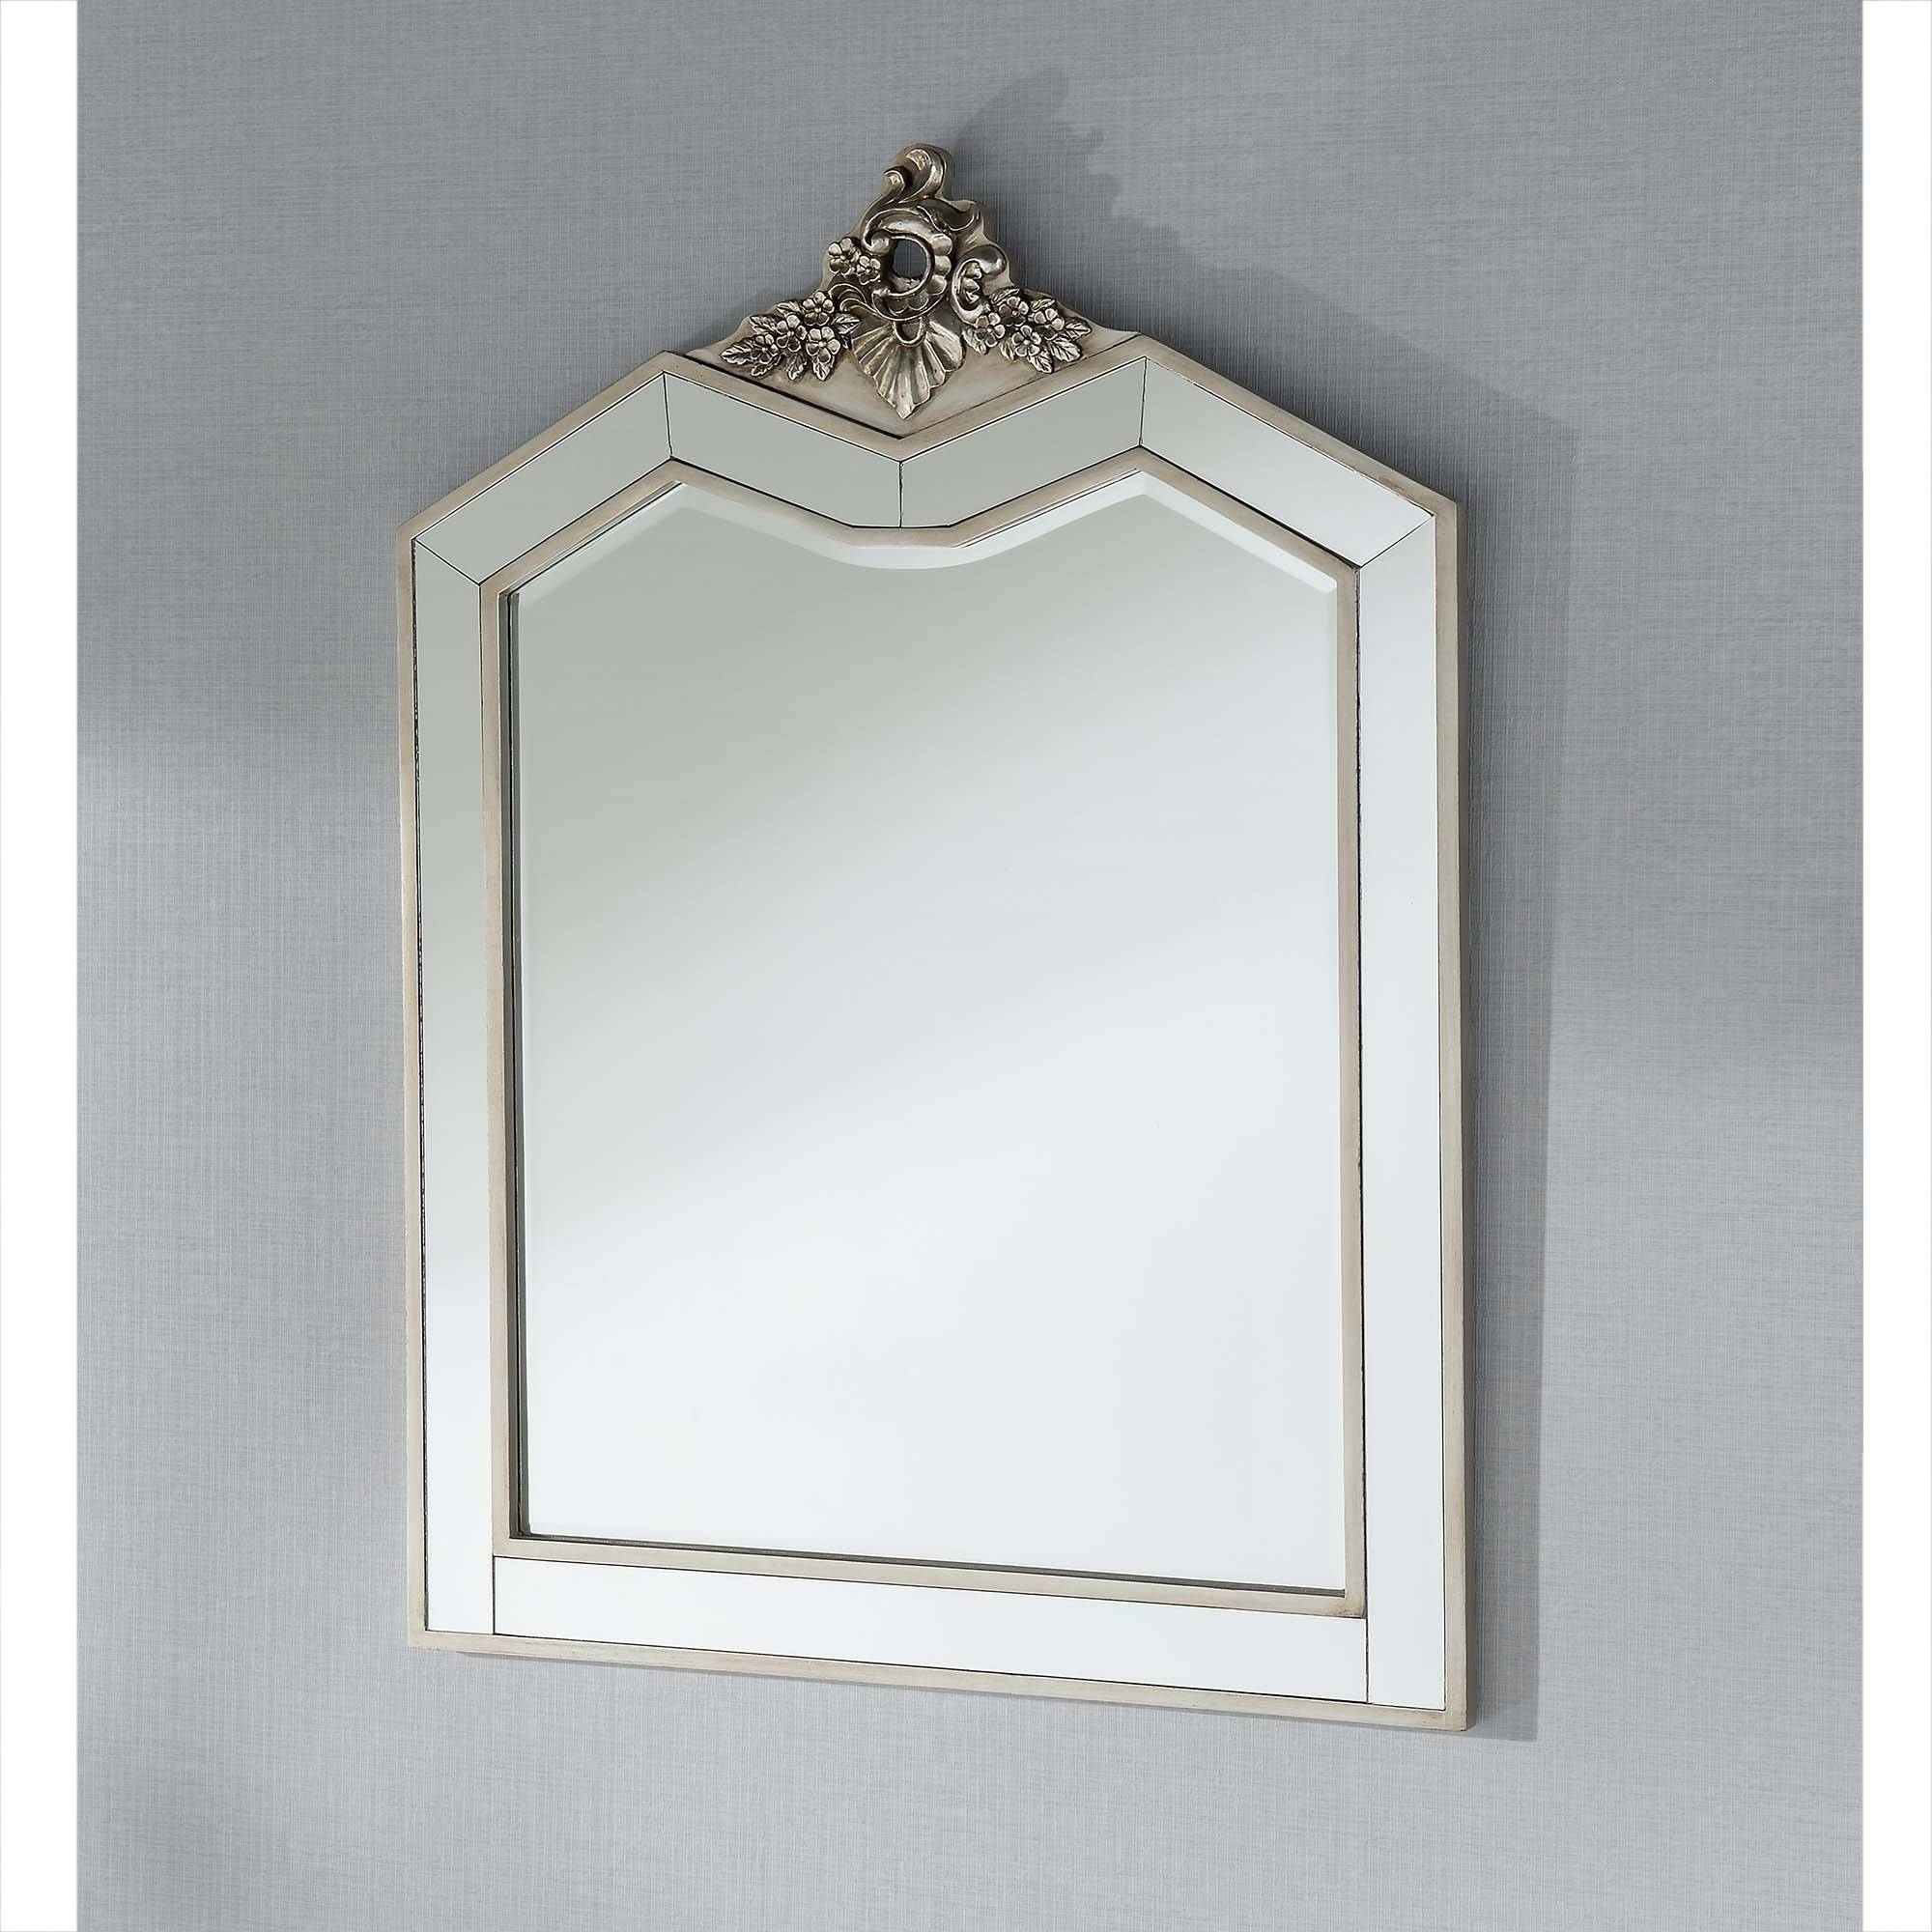 Argente Antique French Style Dressing Table Mirror - French pertaining to Antique French Mirrors (Image 9 of 15)